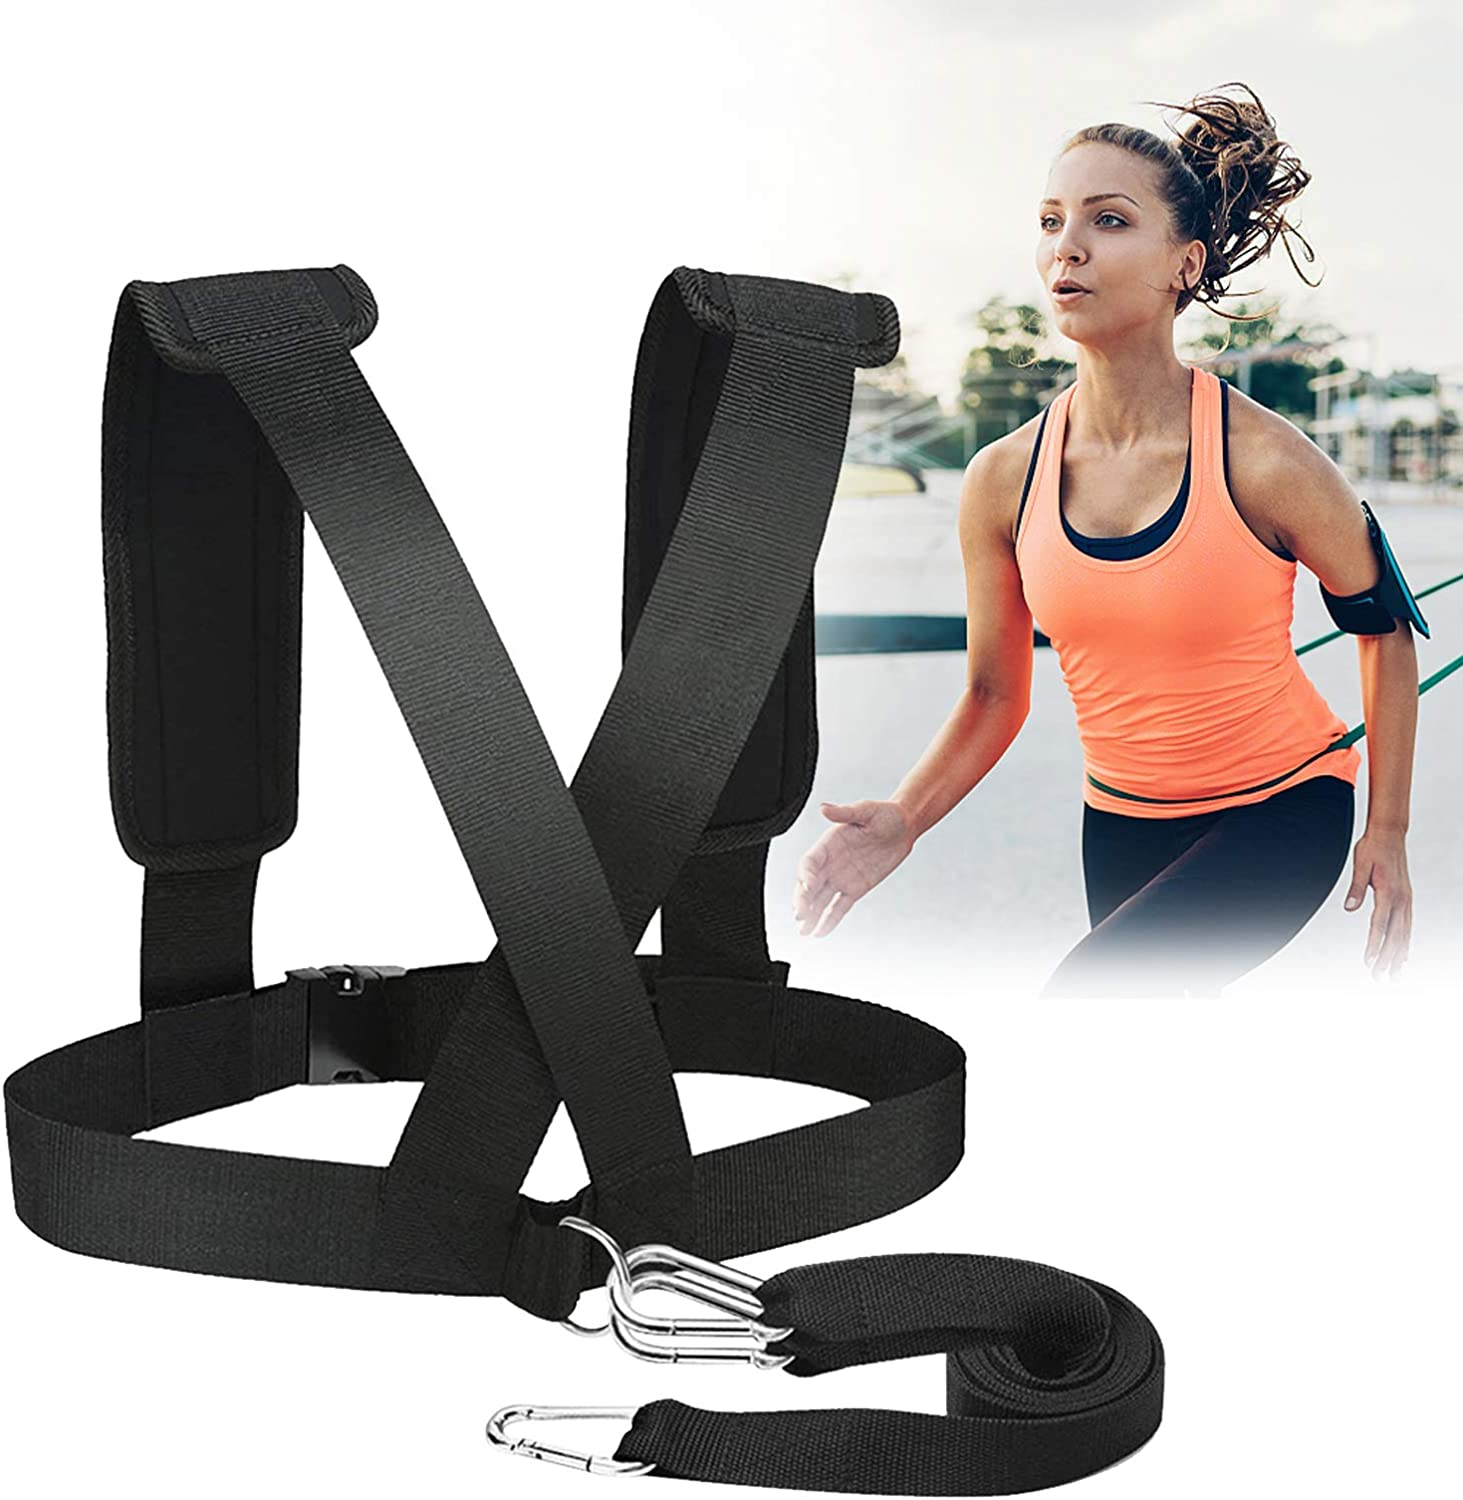 Workout Speed Harness Trainer Padded Shoulder Strap Push sled Broadsheet Prowler Sled Sled Harness Tire Pulling Harness Adjustable Weight Sleds for Training Sled Workout Equipment